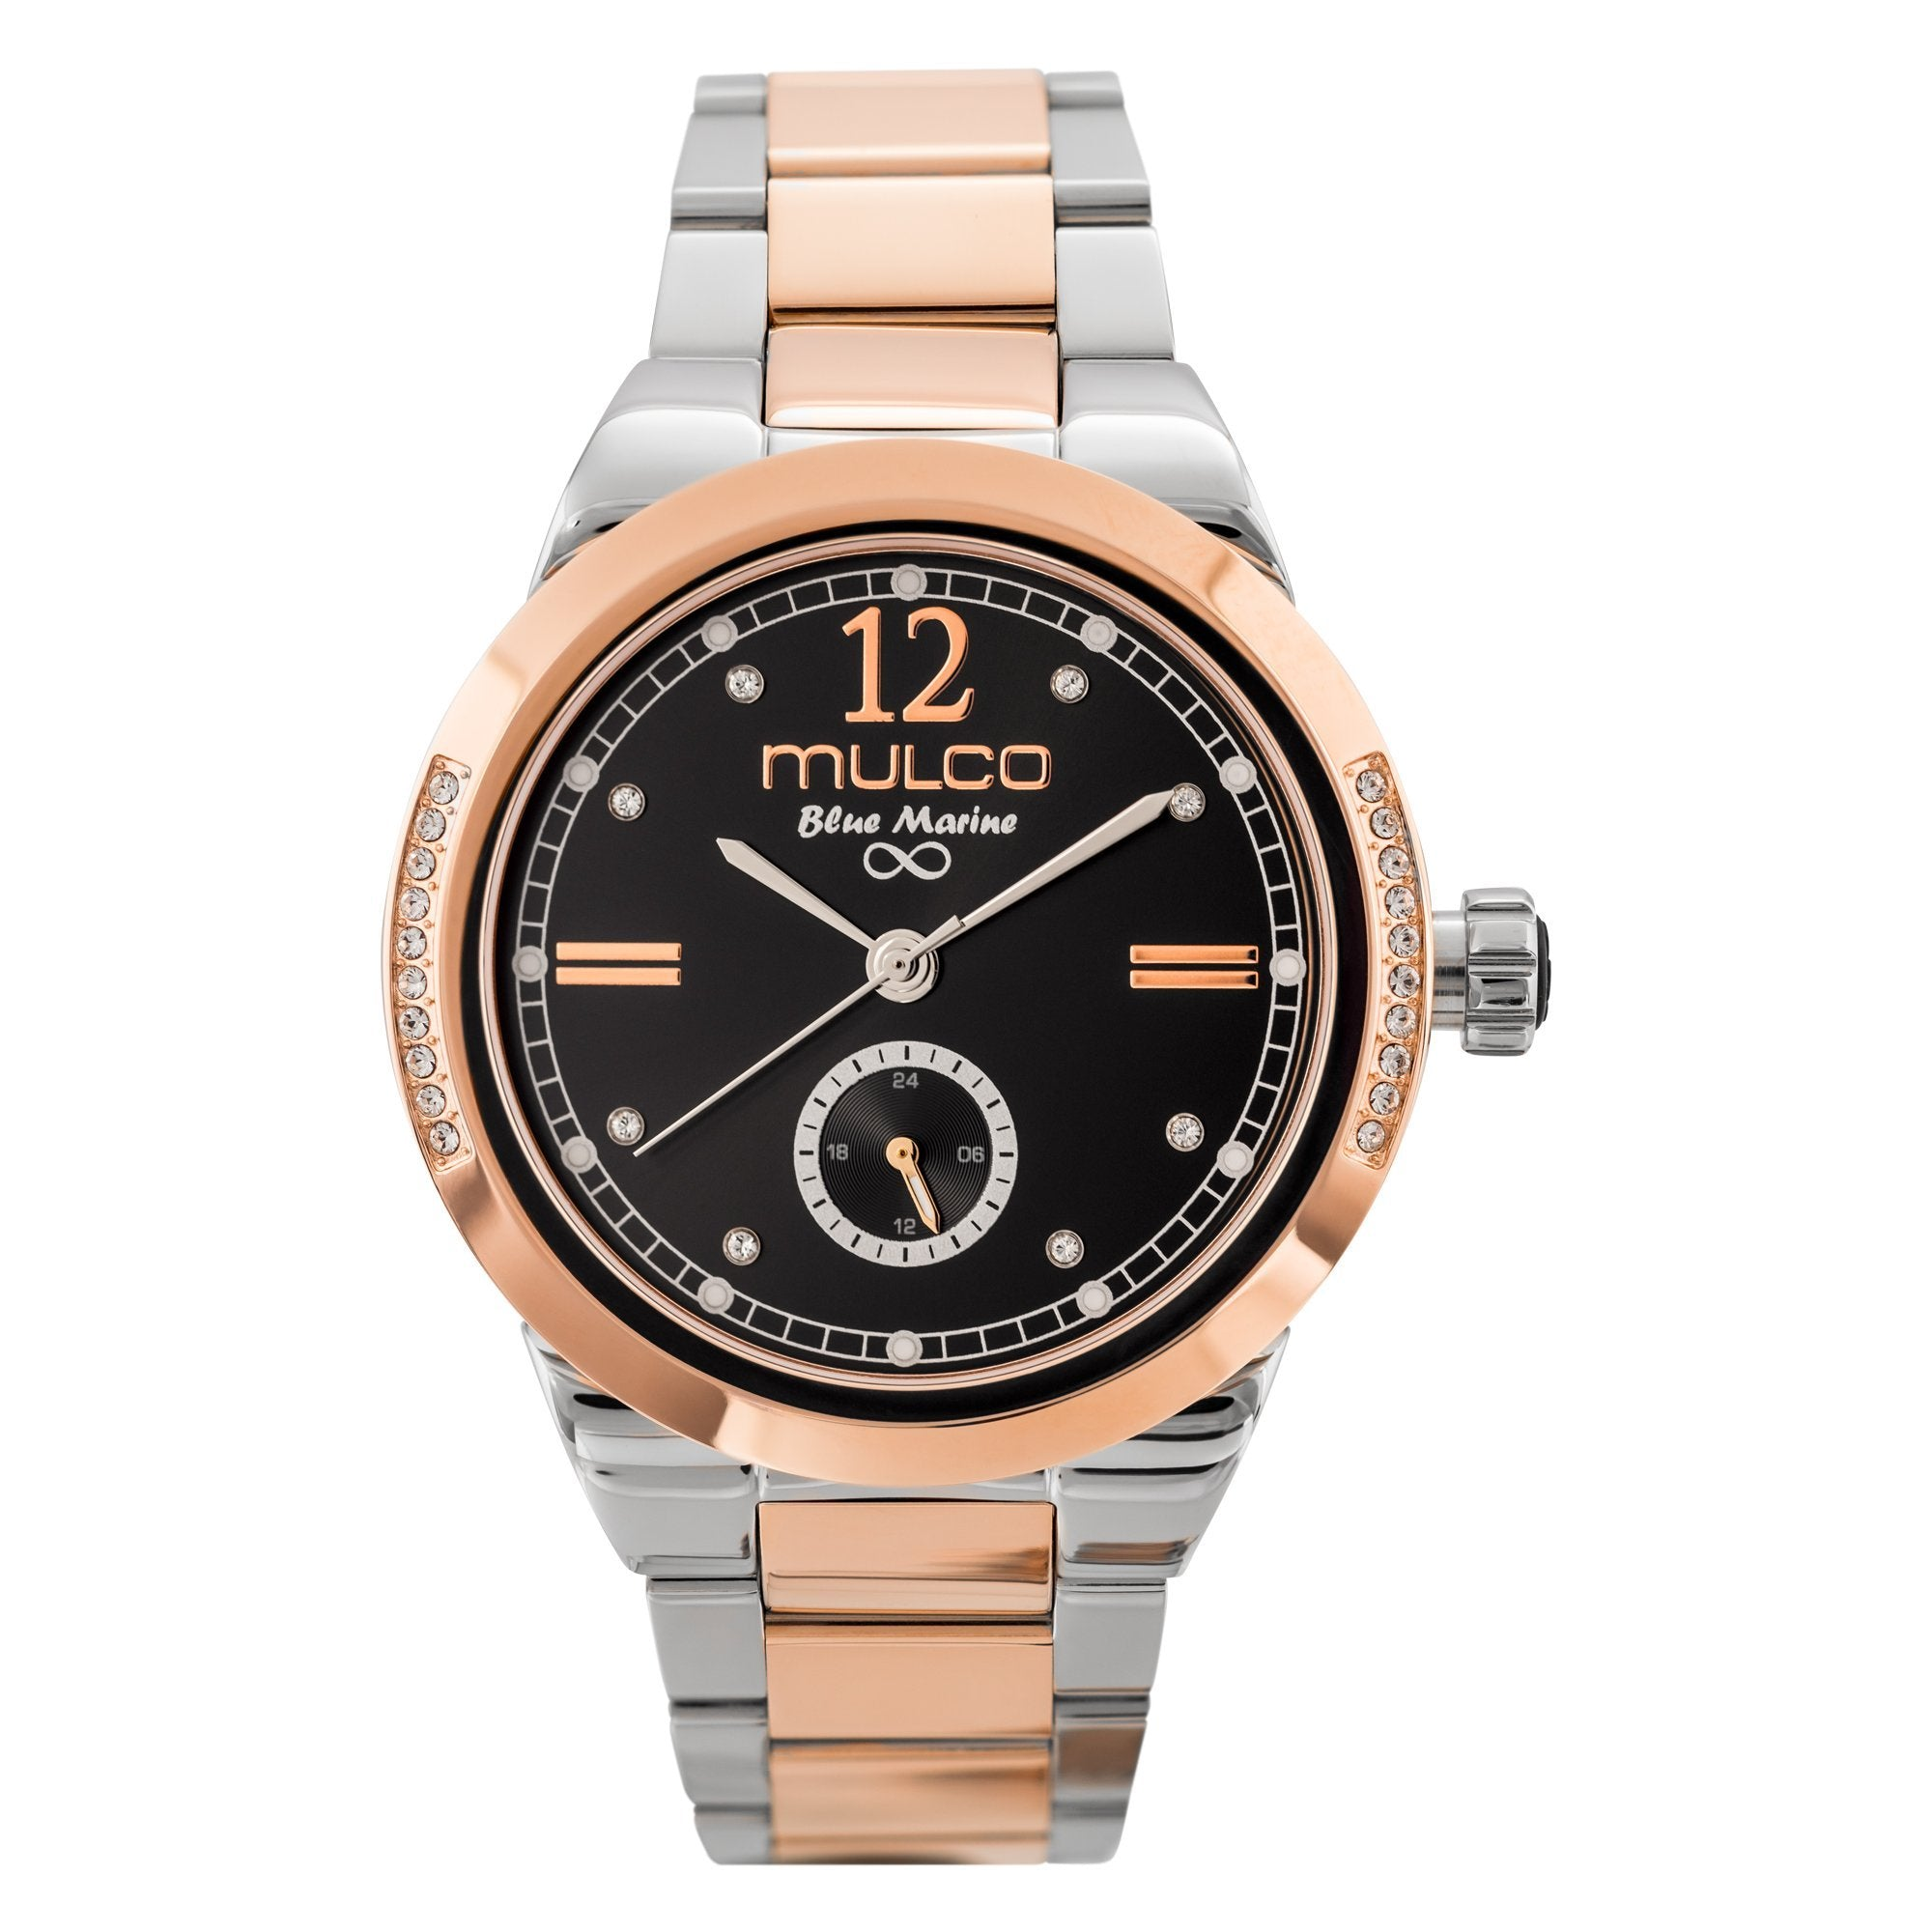 Womens Watches | Silver and Rose Gold Stainless Steel Band | Rose Gold accents| Water Resistant